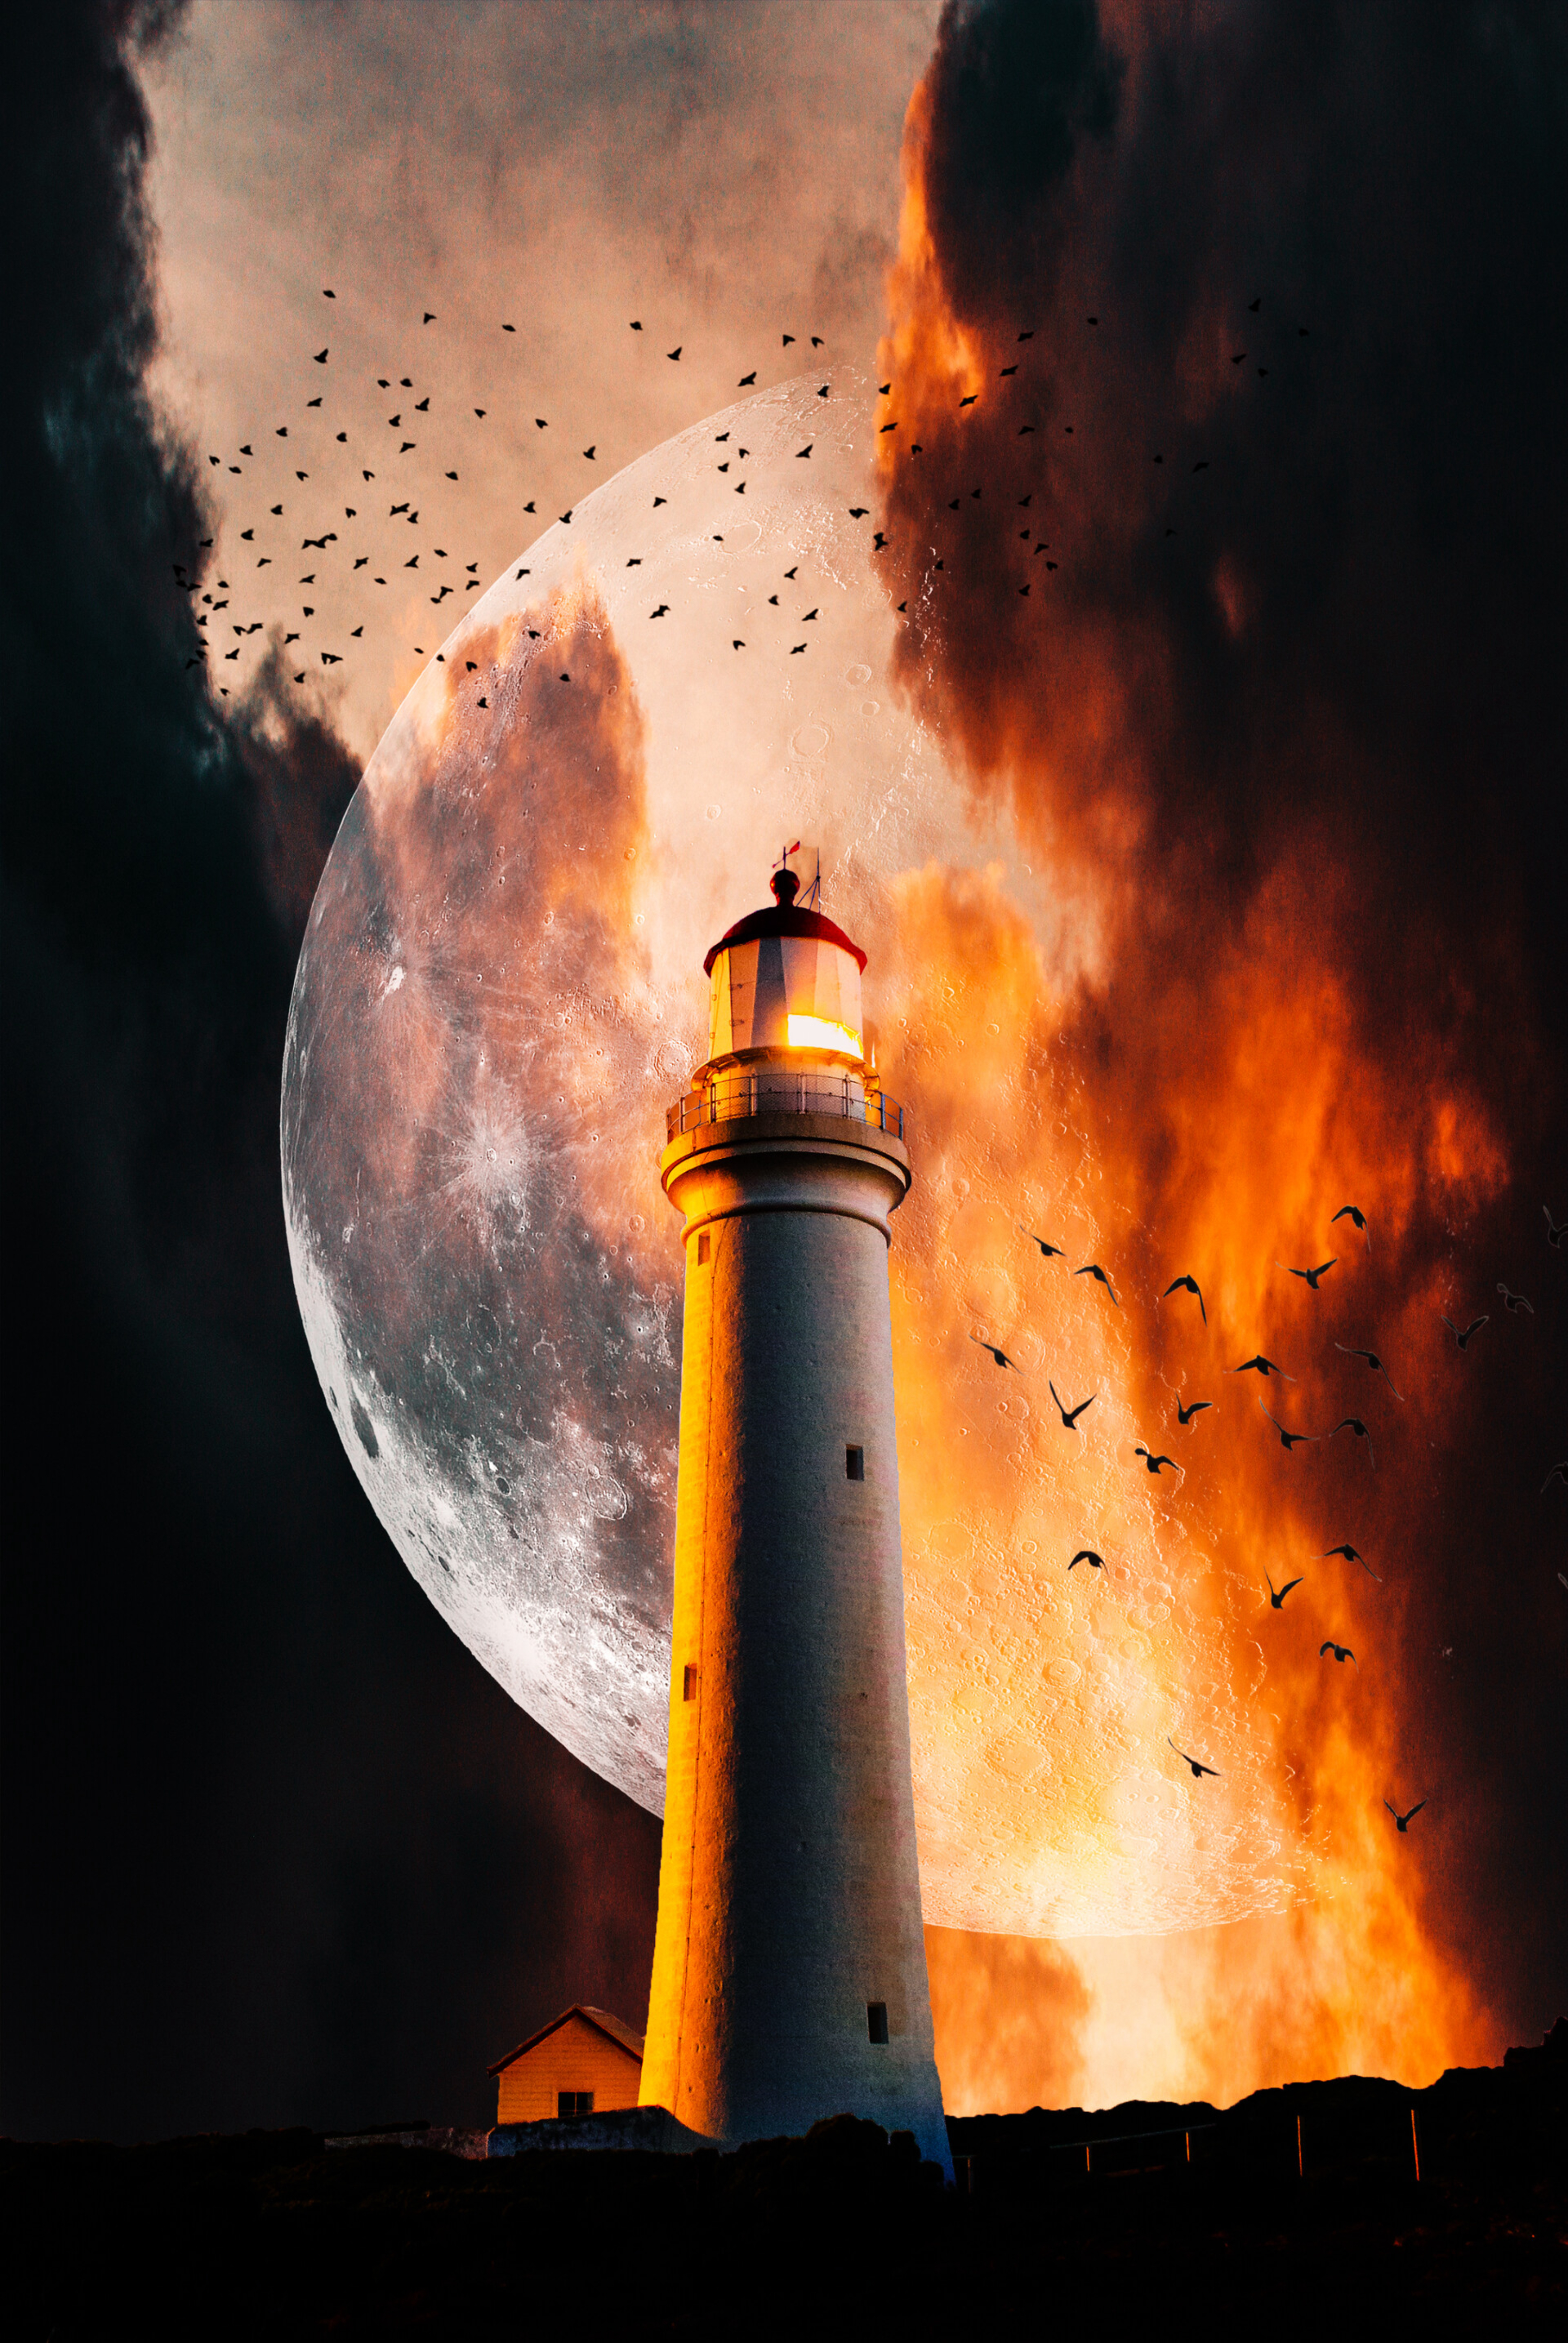 106702 download wallpaper Birds, Smoke, Night, Moon, Flame, Miscellanea, Miscellaneous, Lighthouse screensavers and pictures for free